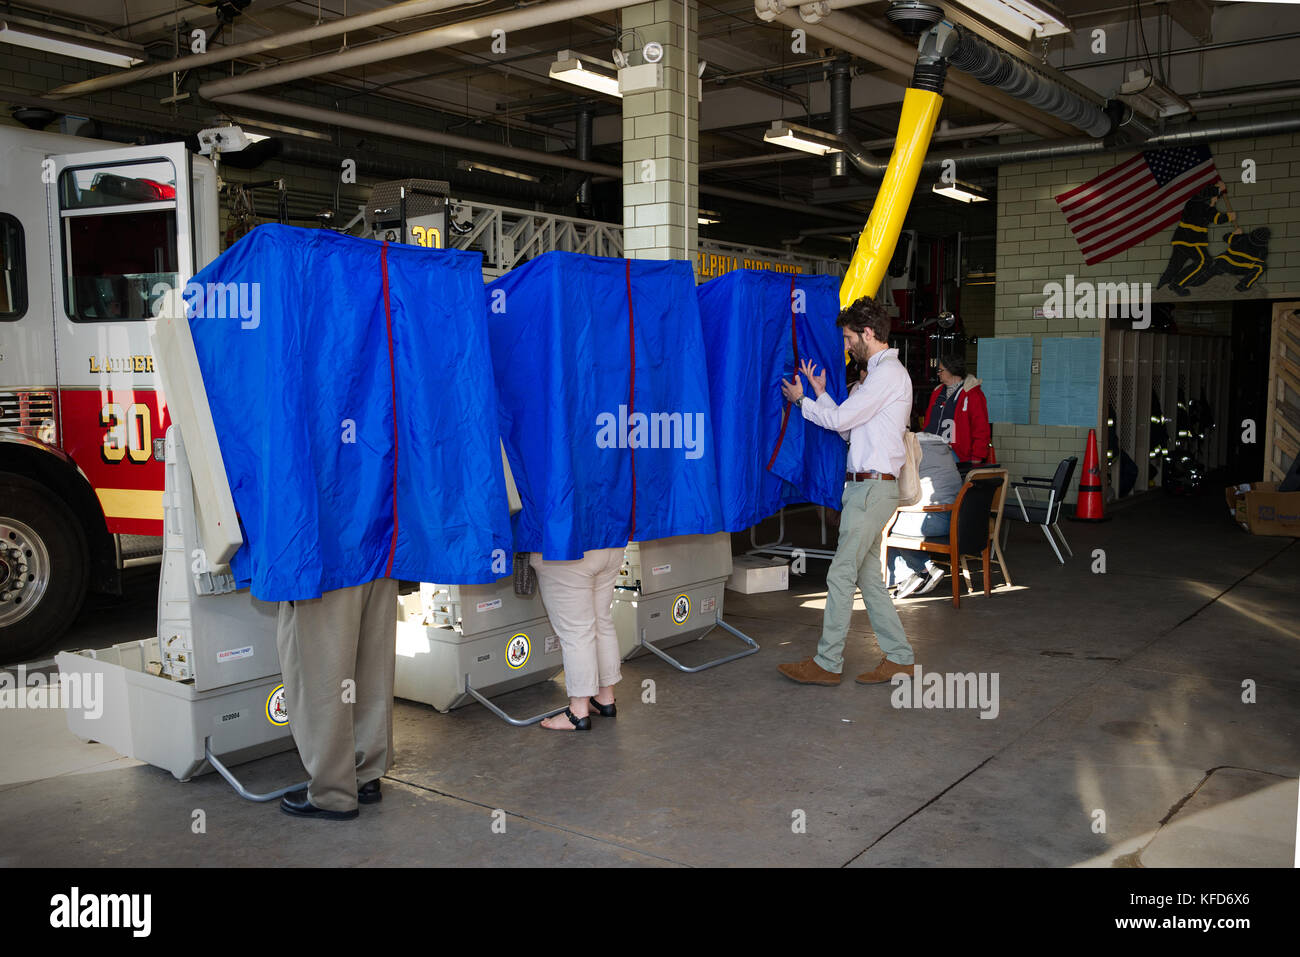 On Election Day, American citizens cast the ballot at a polling station located inside a Philadelphia, PA fire station. - Stock Image